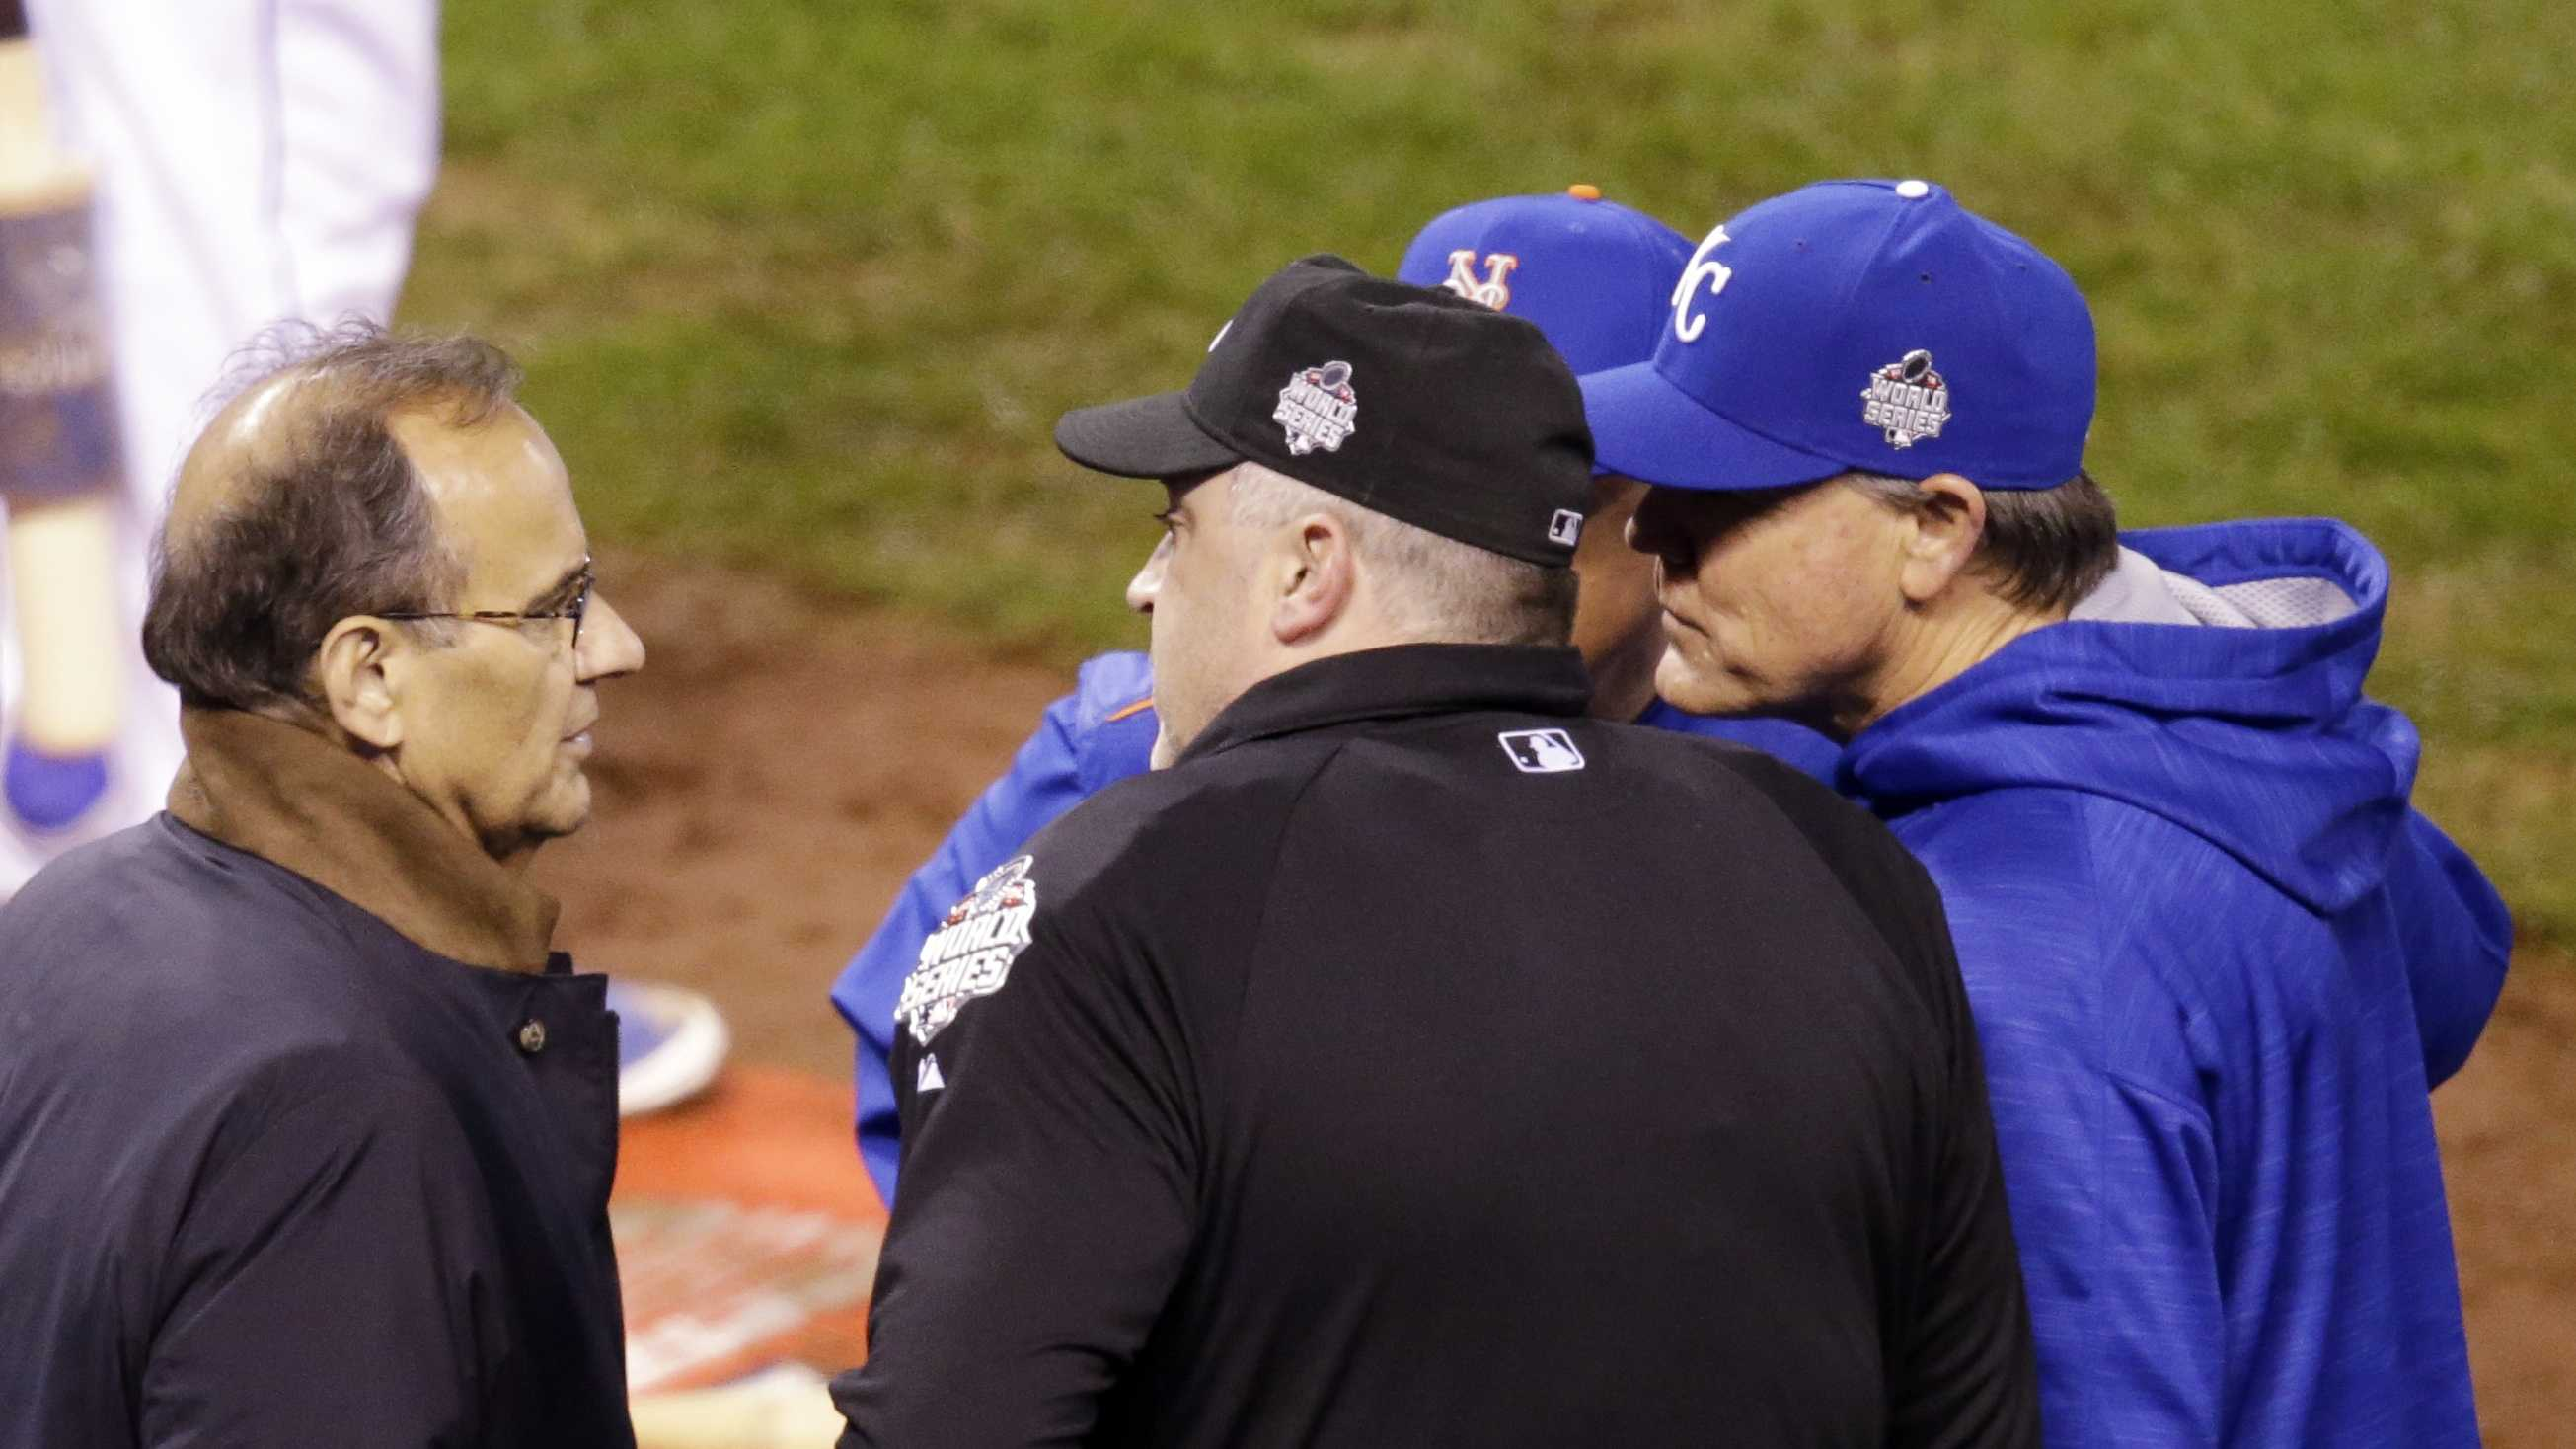 Executive Vice President for Baseball Operations Joe Torre talks to New York Mets manager Terry Collins and Kansas City Royals manager Ned Yost during a television technical interruption during the fourth inning of Game 1 of the Major League Baseball World Series Tuesday, Oct. 27, 2015, in Kansas City, Mo. (AP Photo/David Goldman)